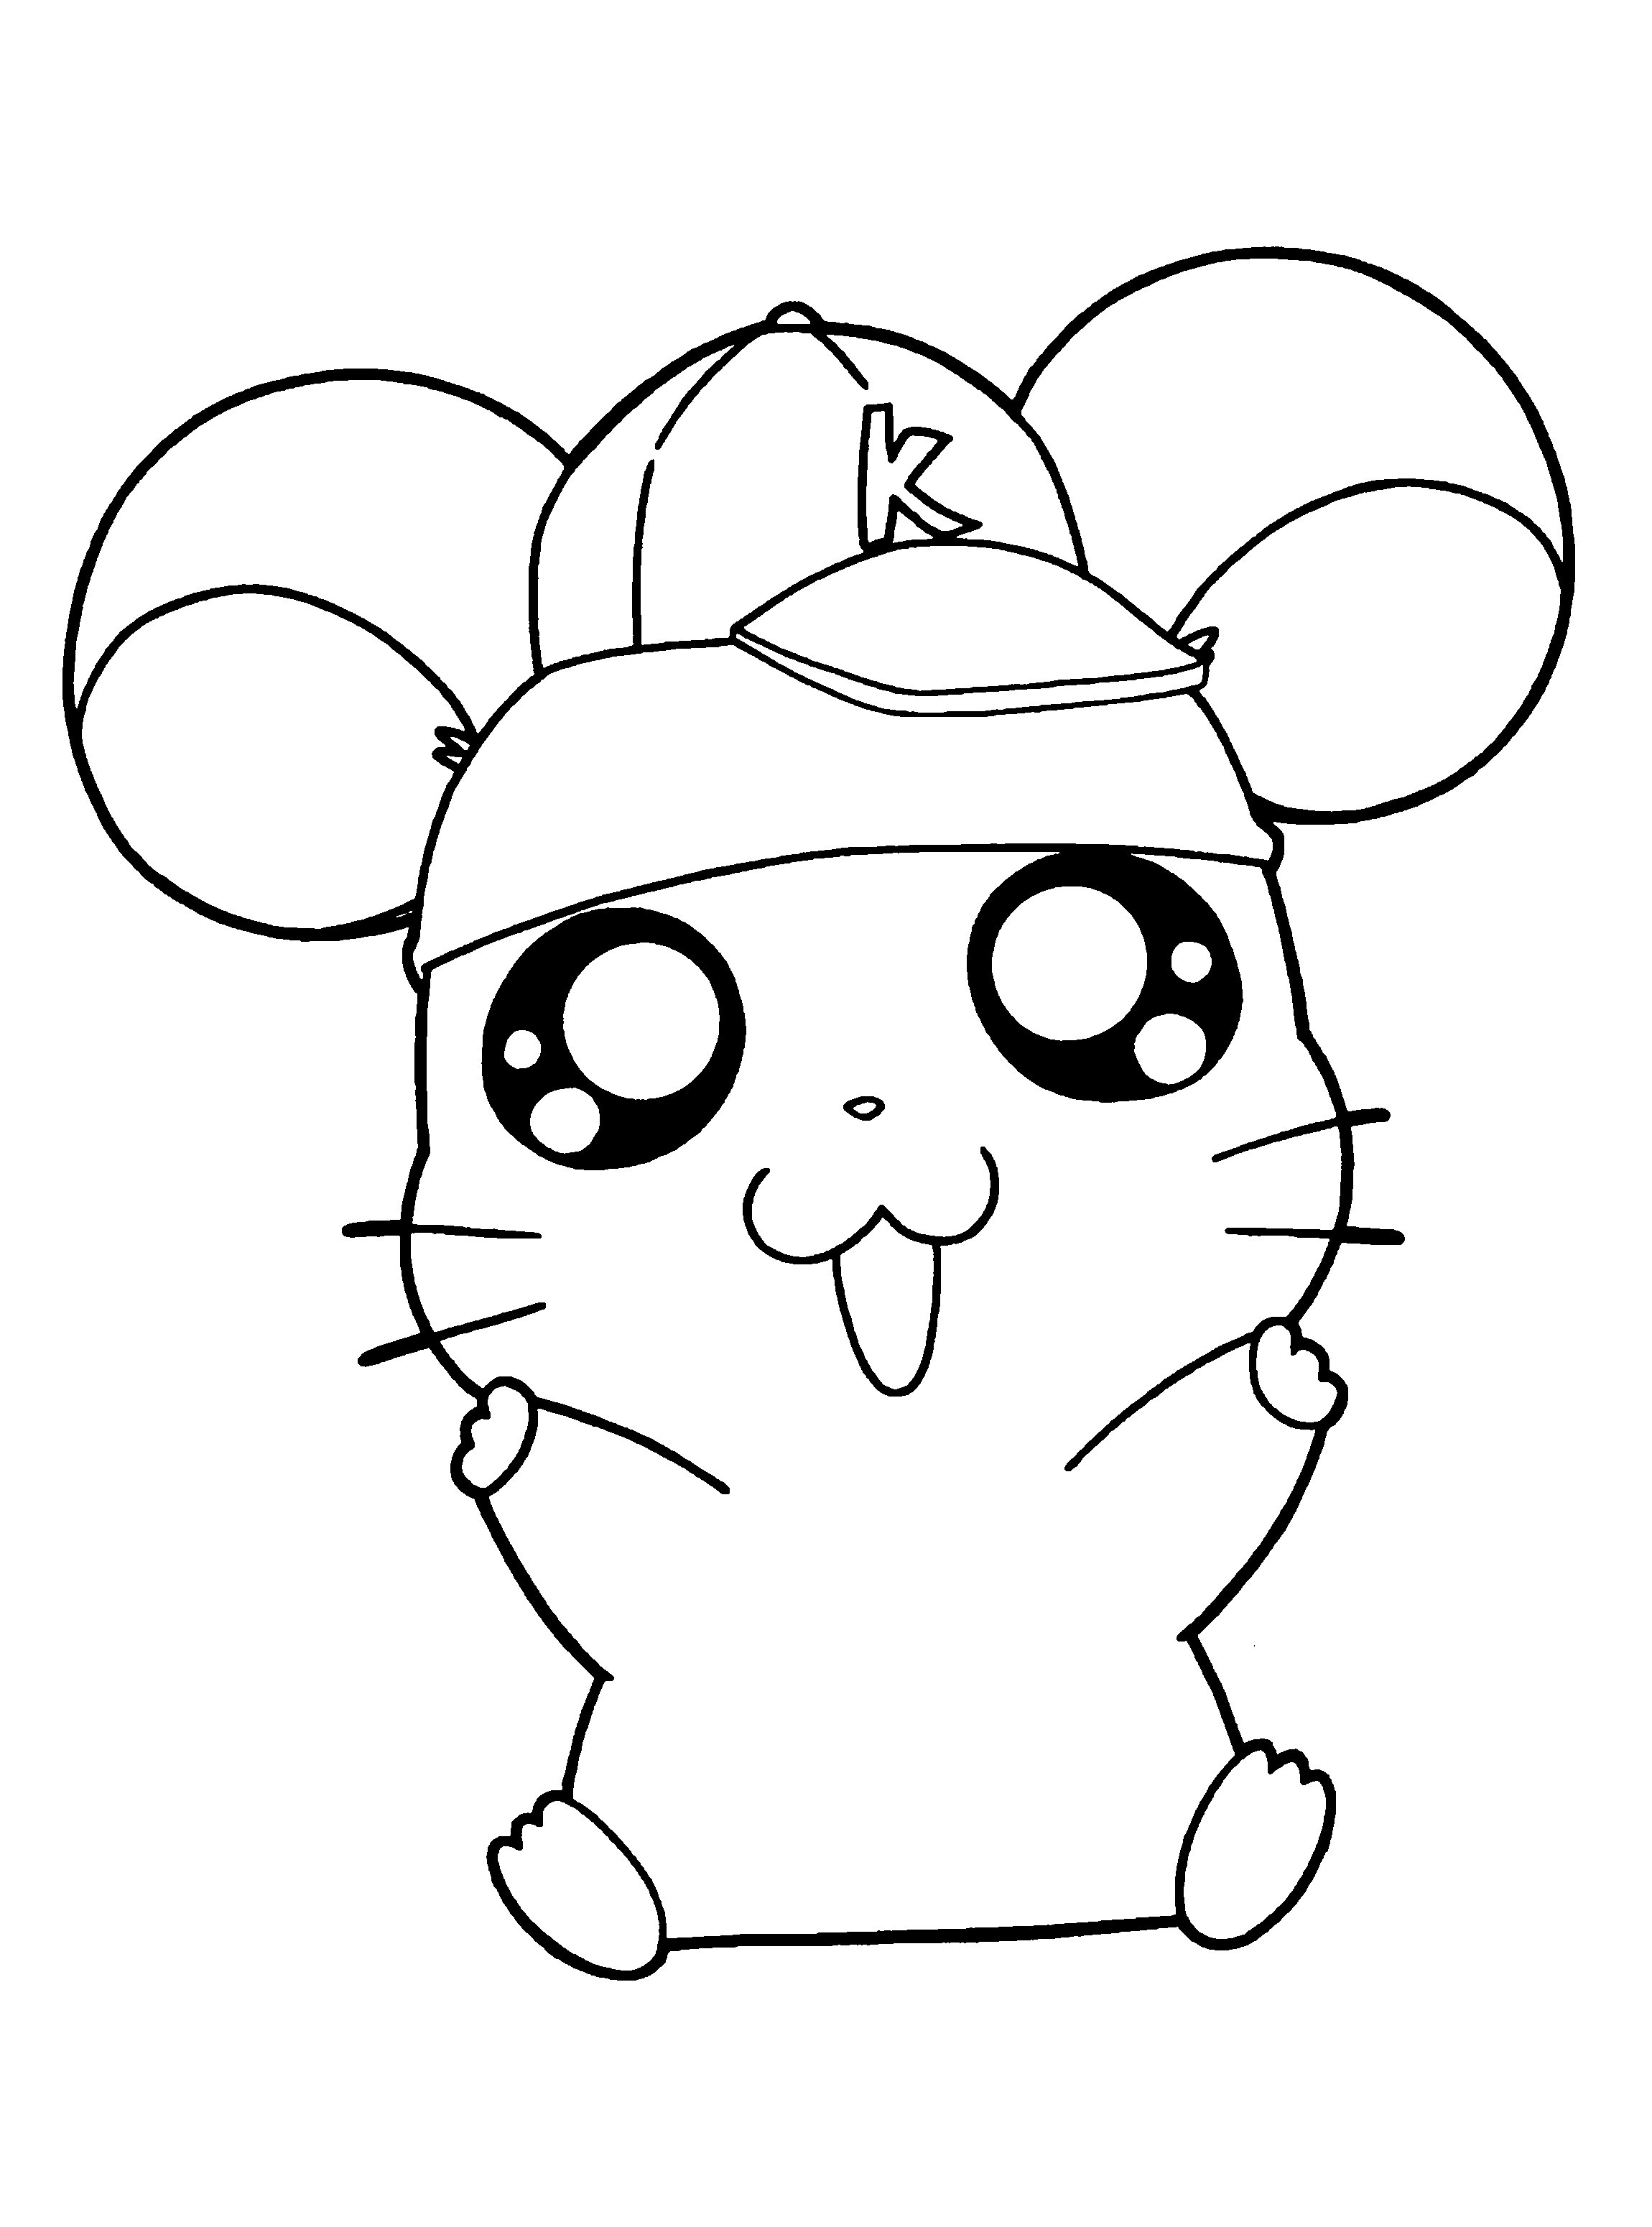 Hamster Coloring Pages Best Coloring